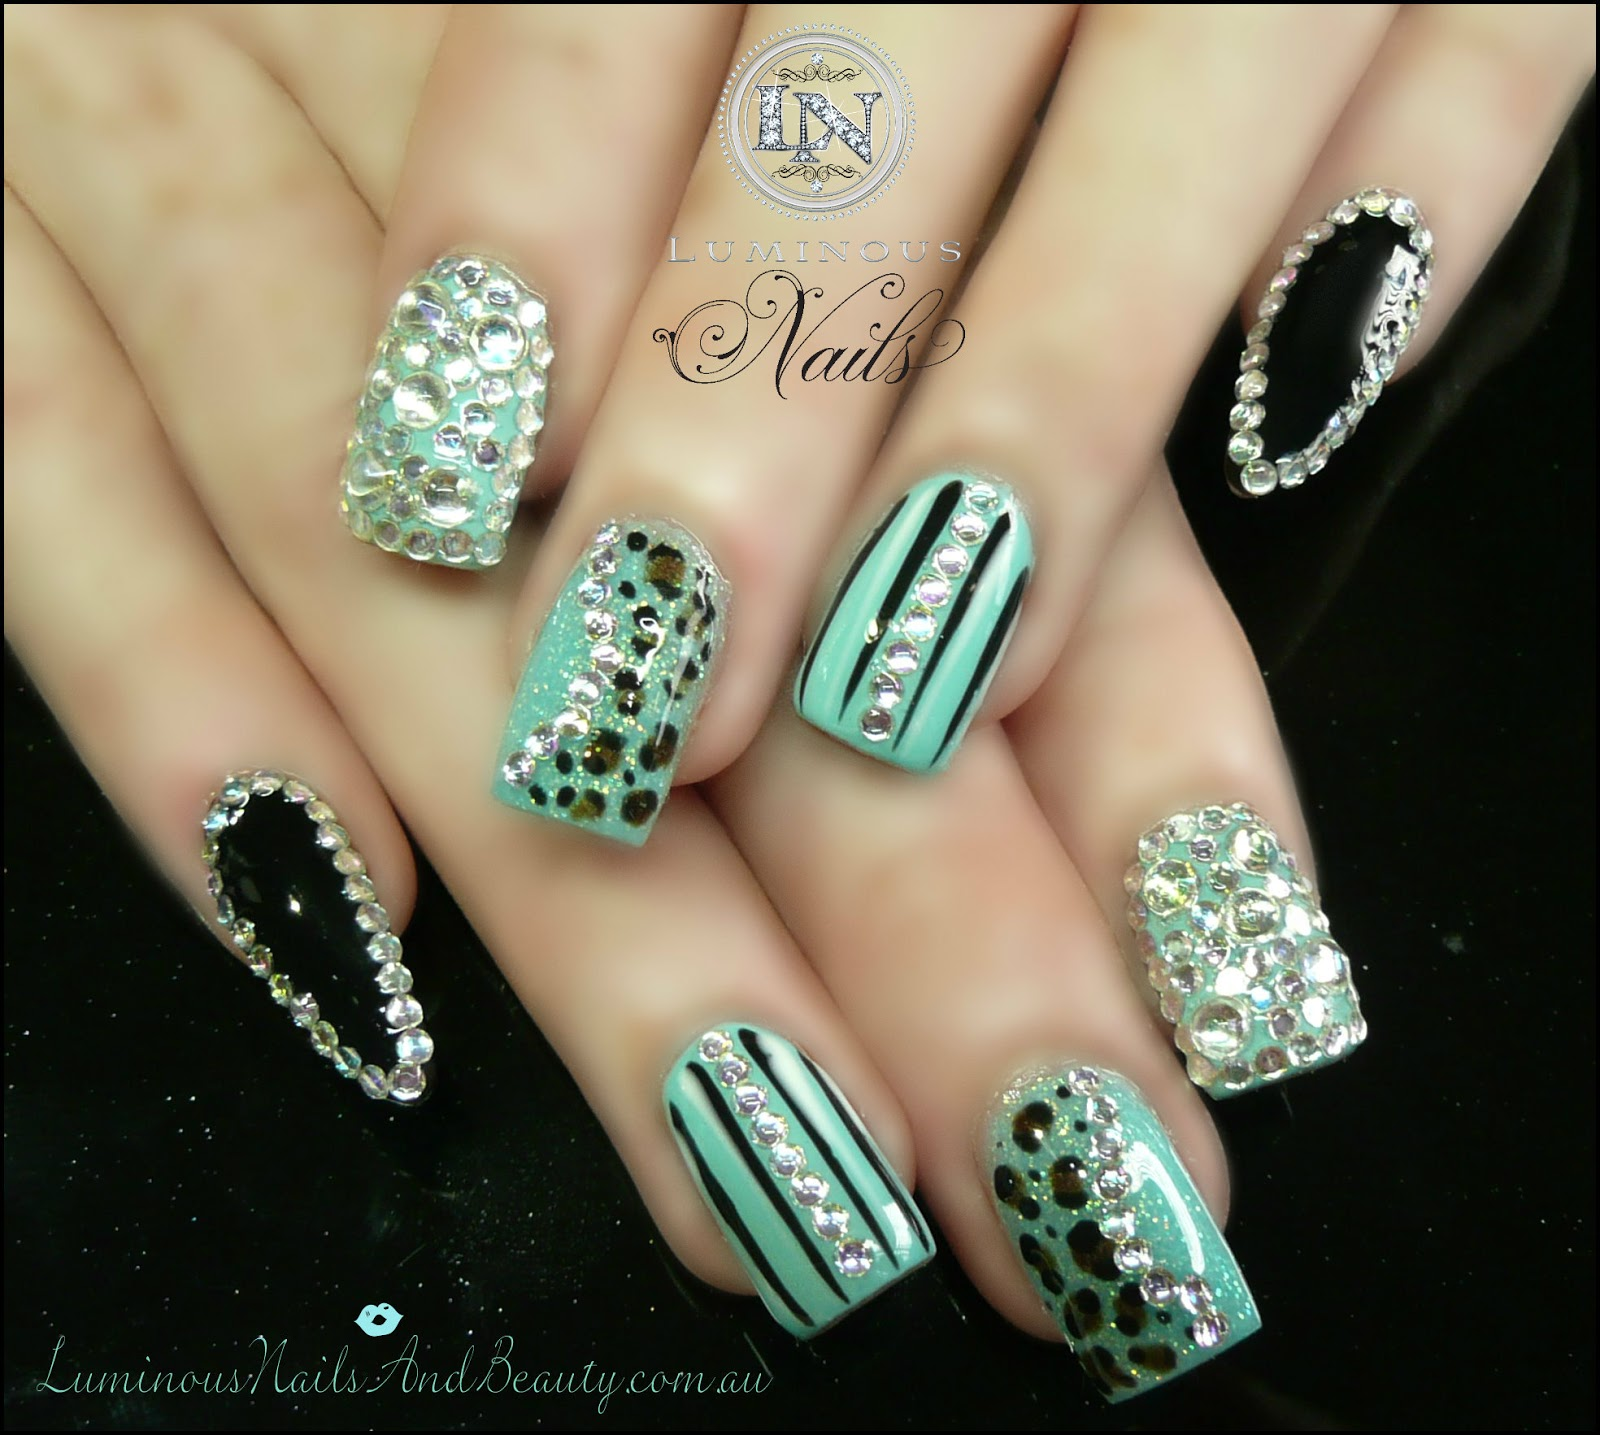 The Appealing Diamond white nail art designs Images